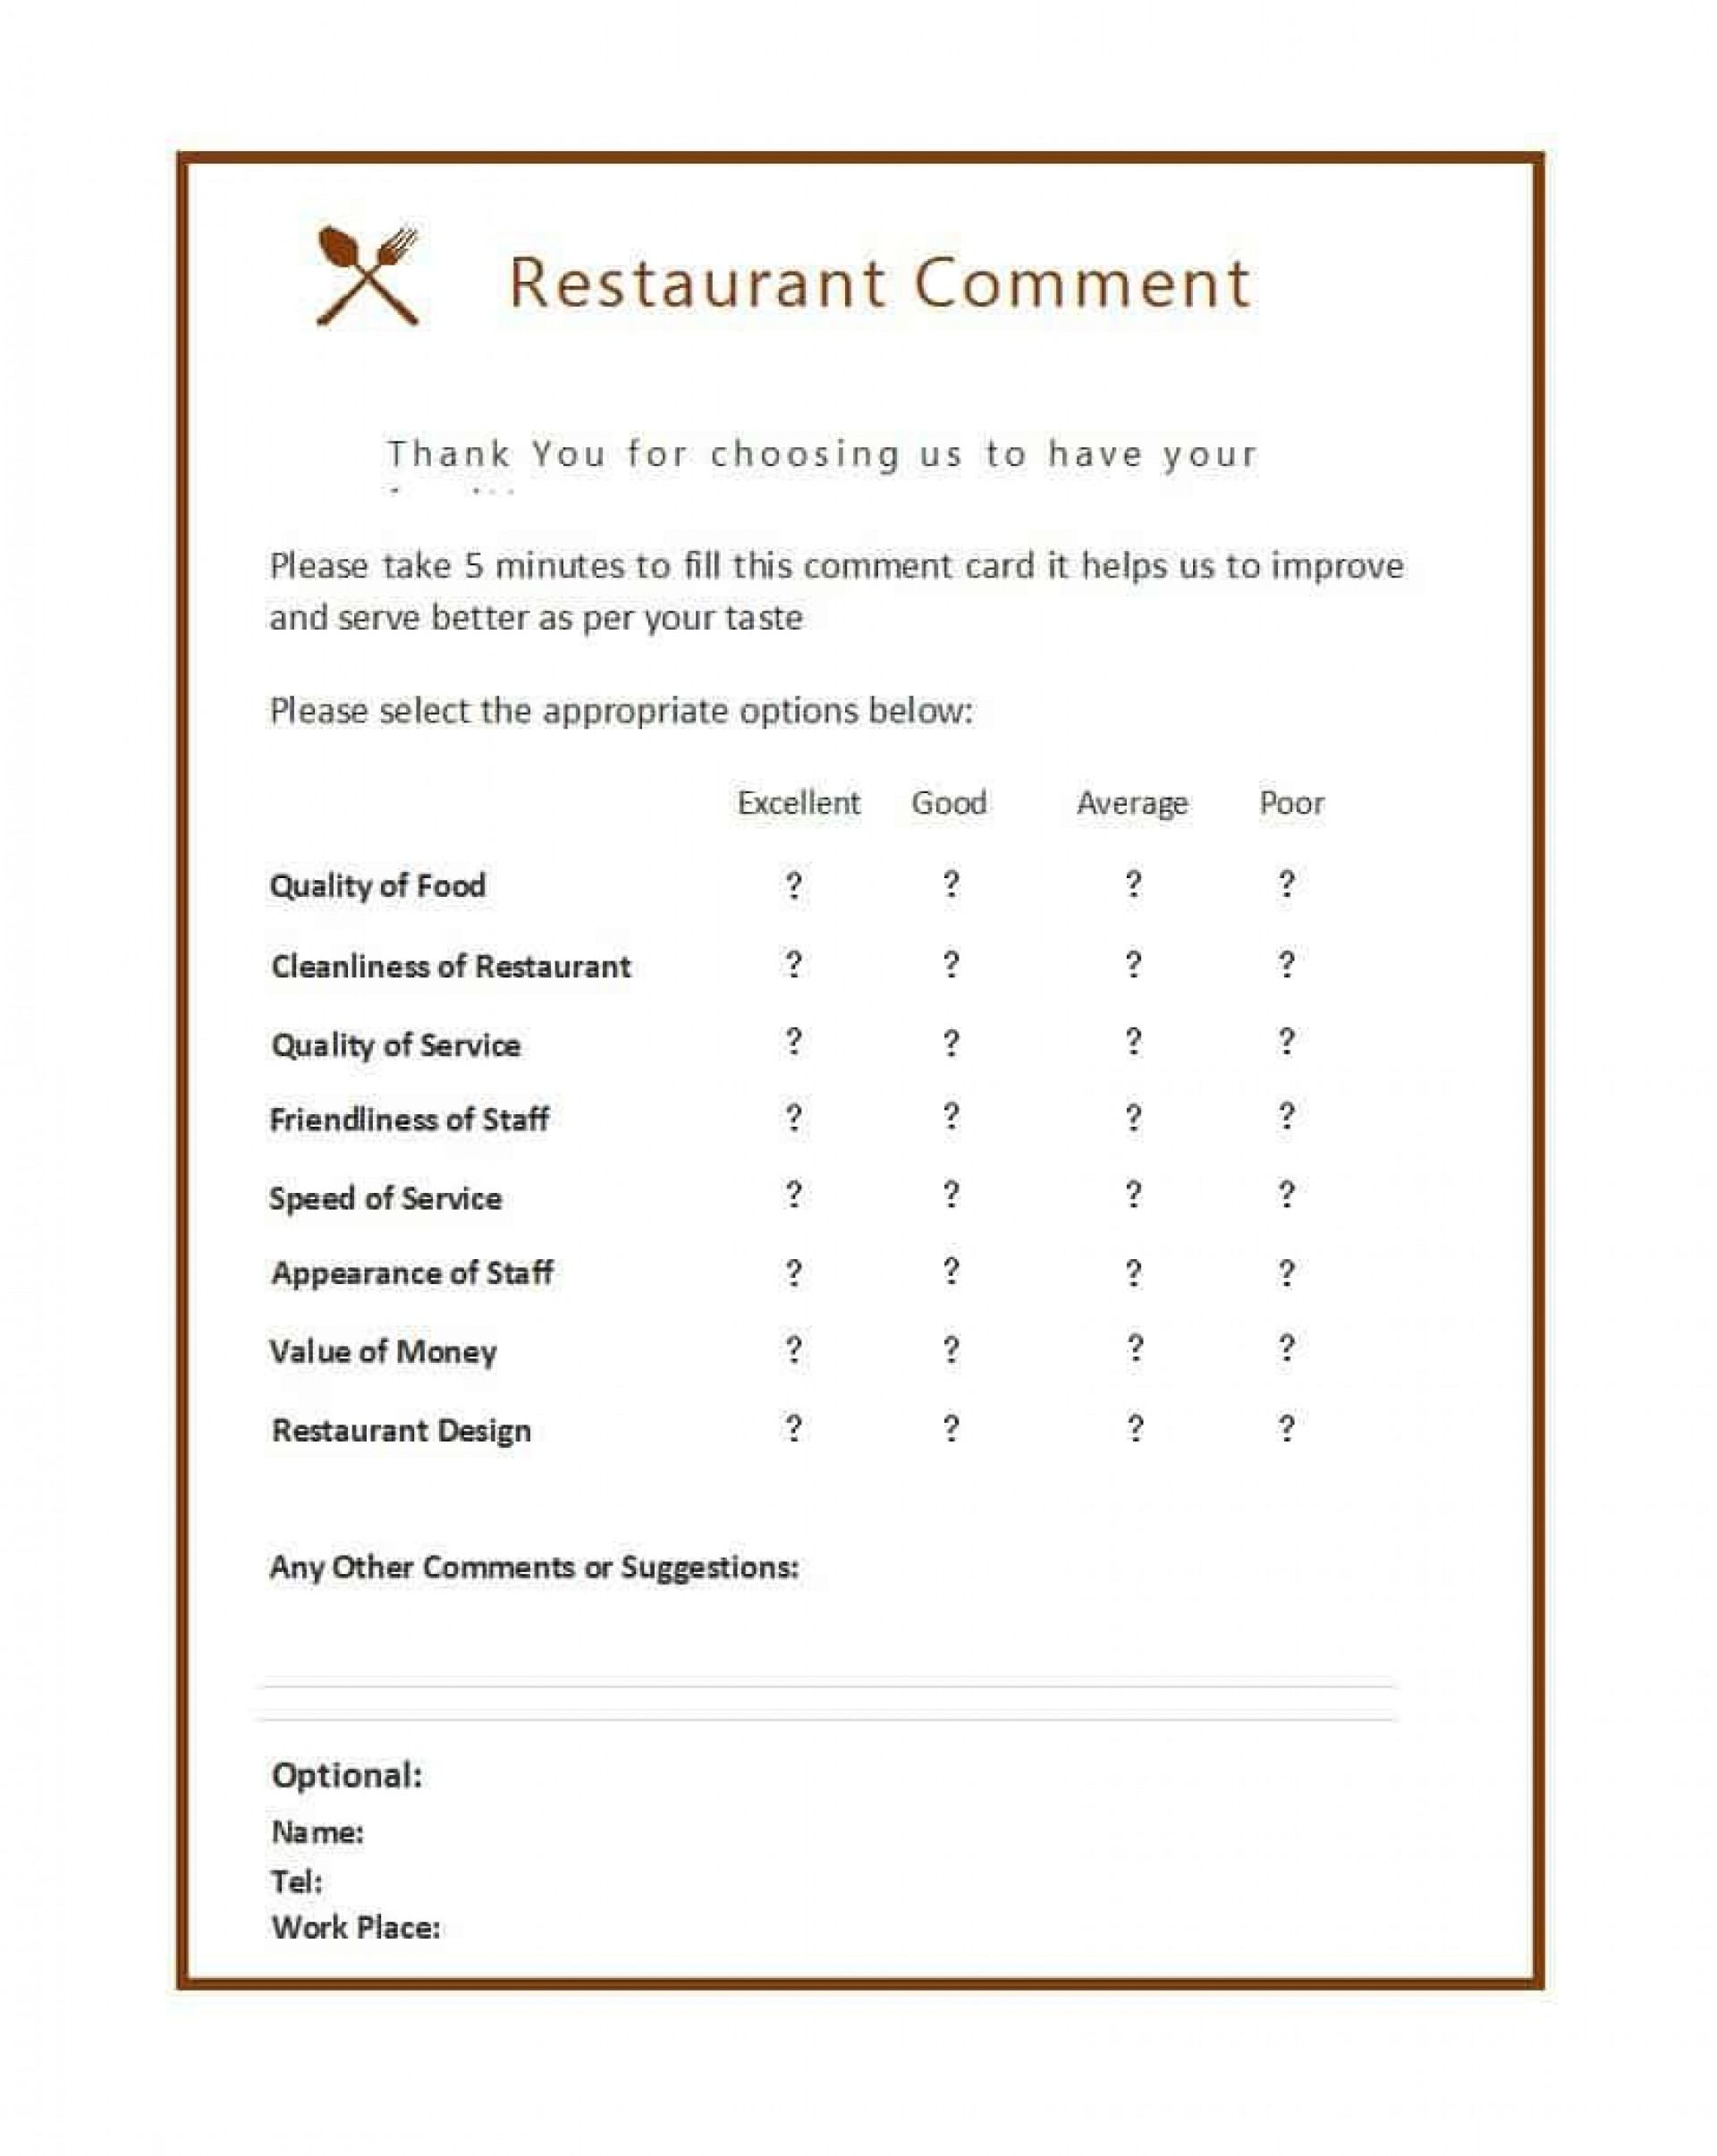 008 Remarkable Restaurant Customer Comment Card Template Inspiration  For Word Free1920